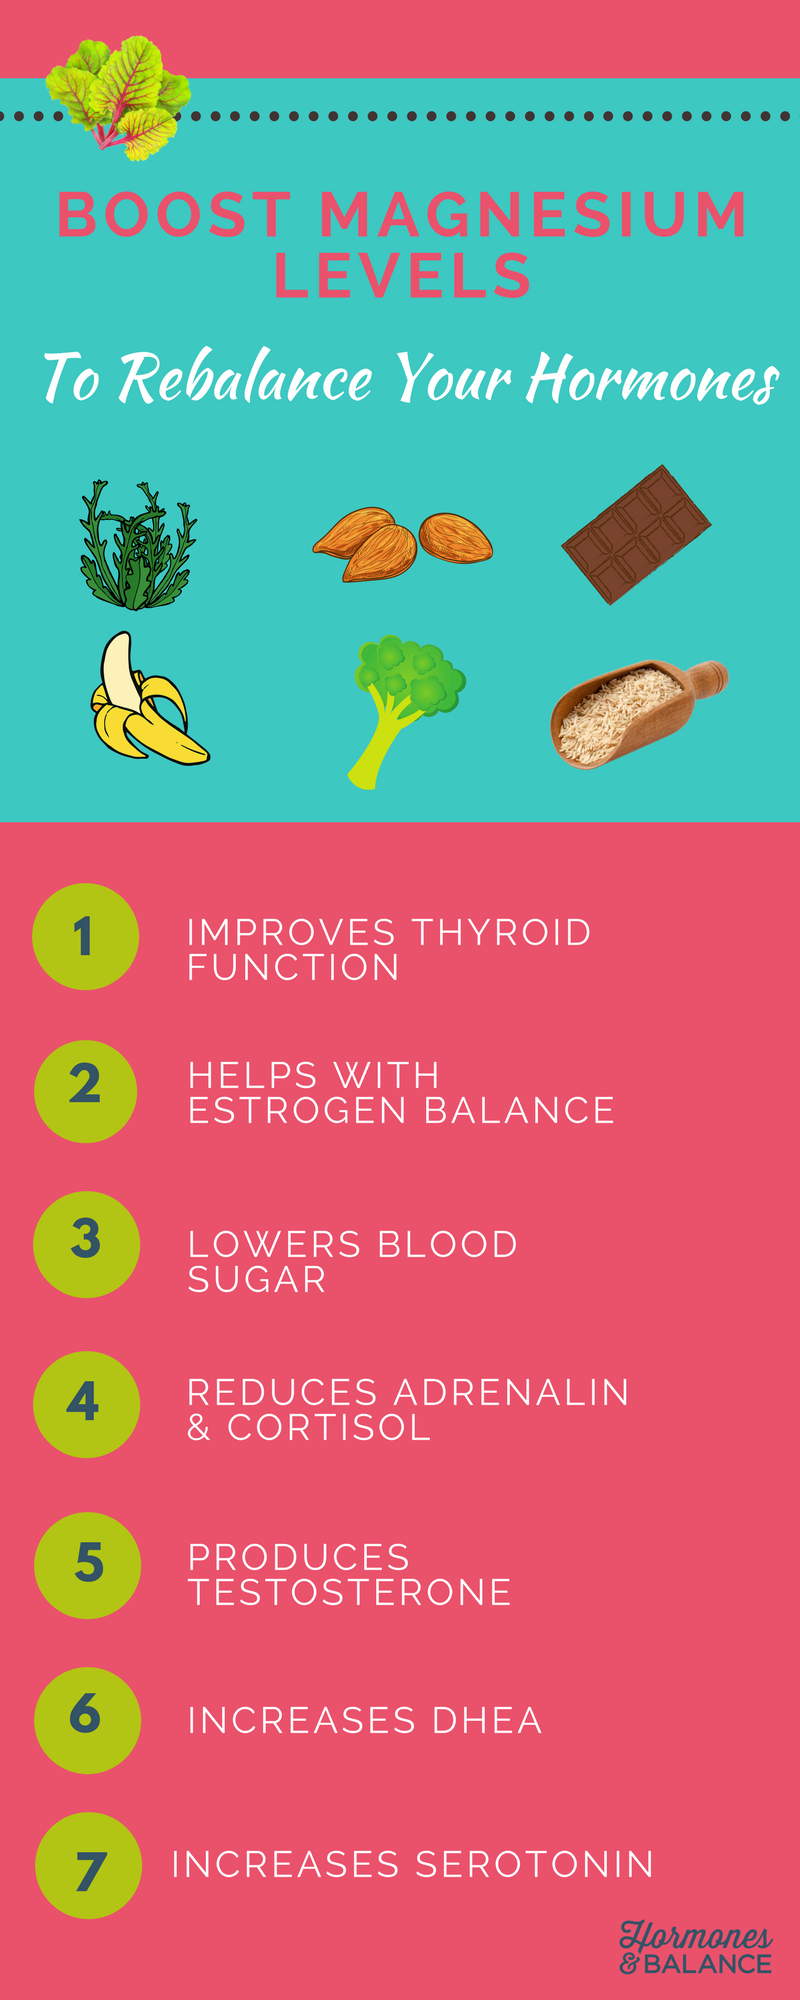 How To Boost Magnesium Levels To Rebalance Your Hormones Hormone Health Hormones Balance Hormones Naturally